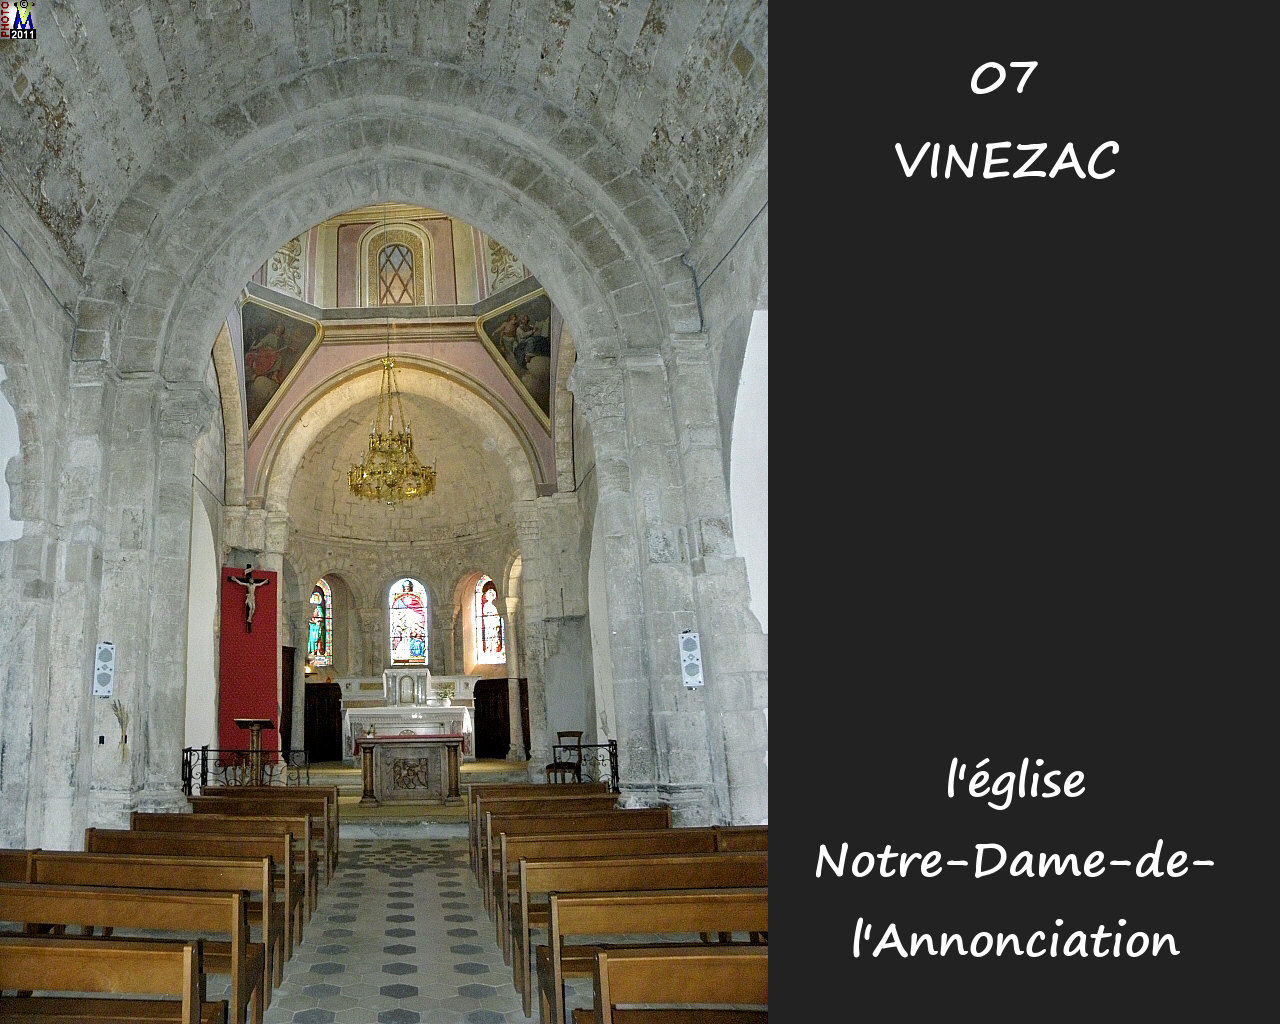 07VINEZAC_eglise_200.jpg